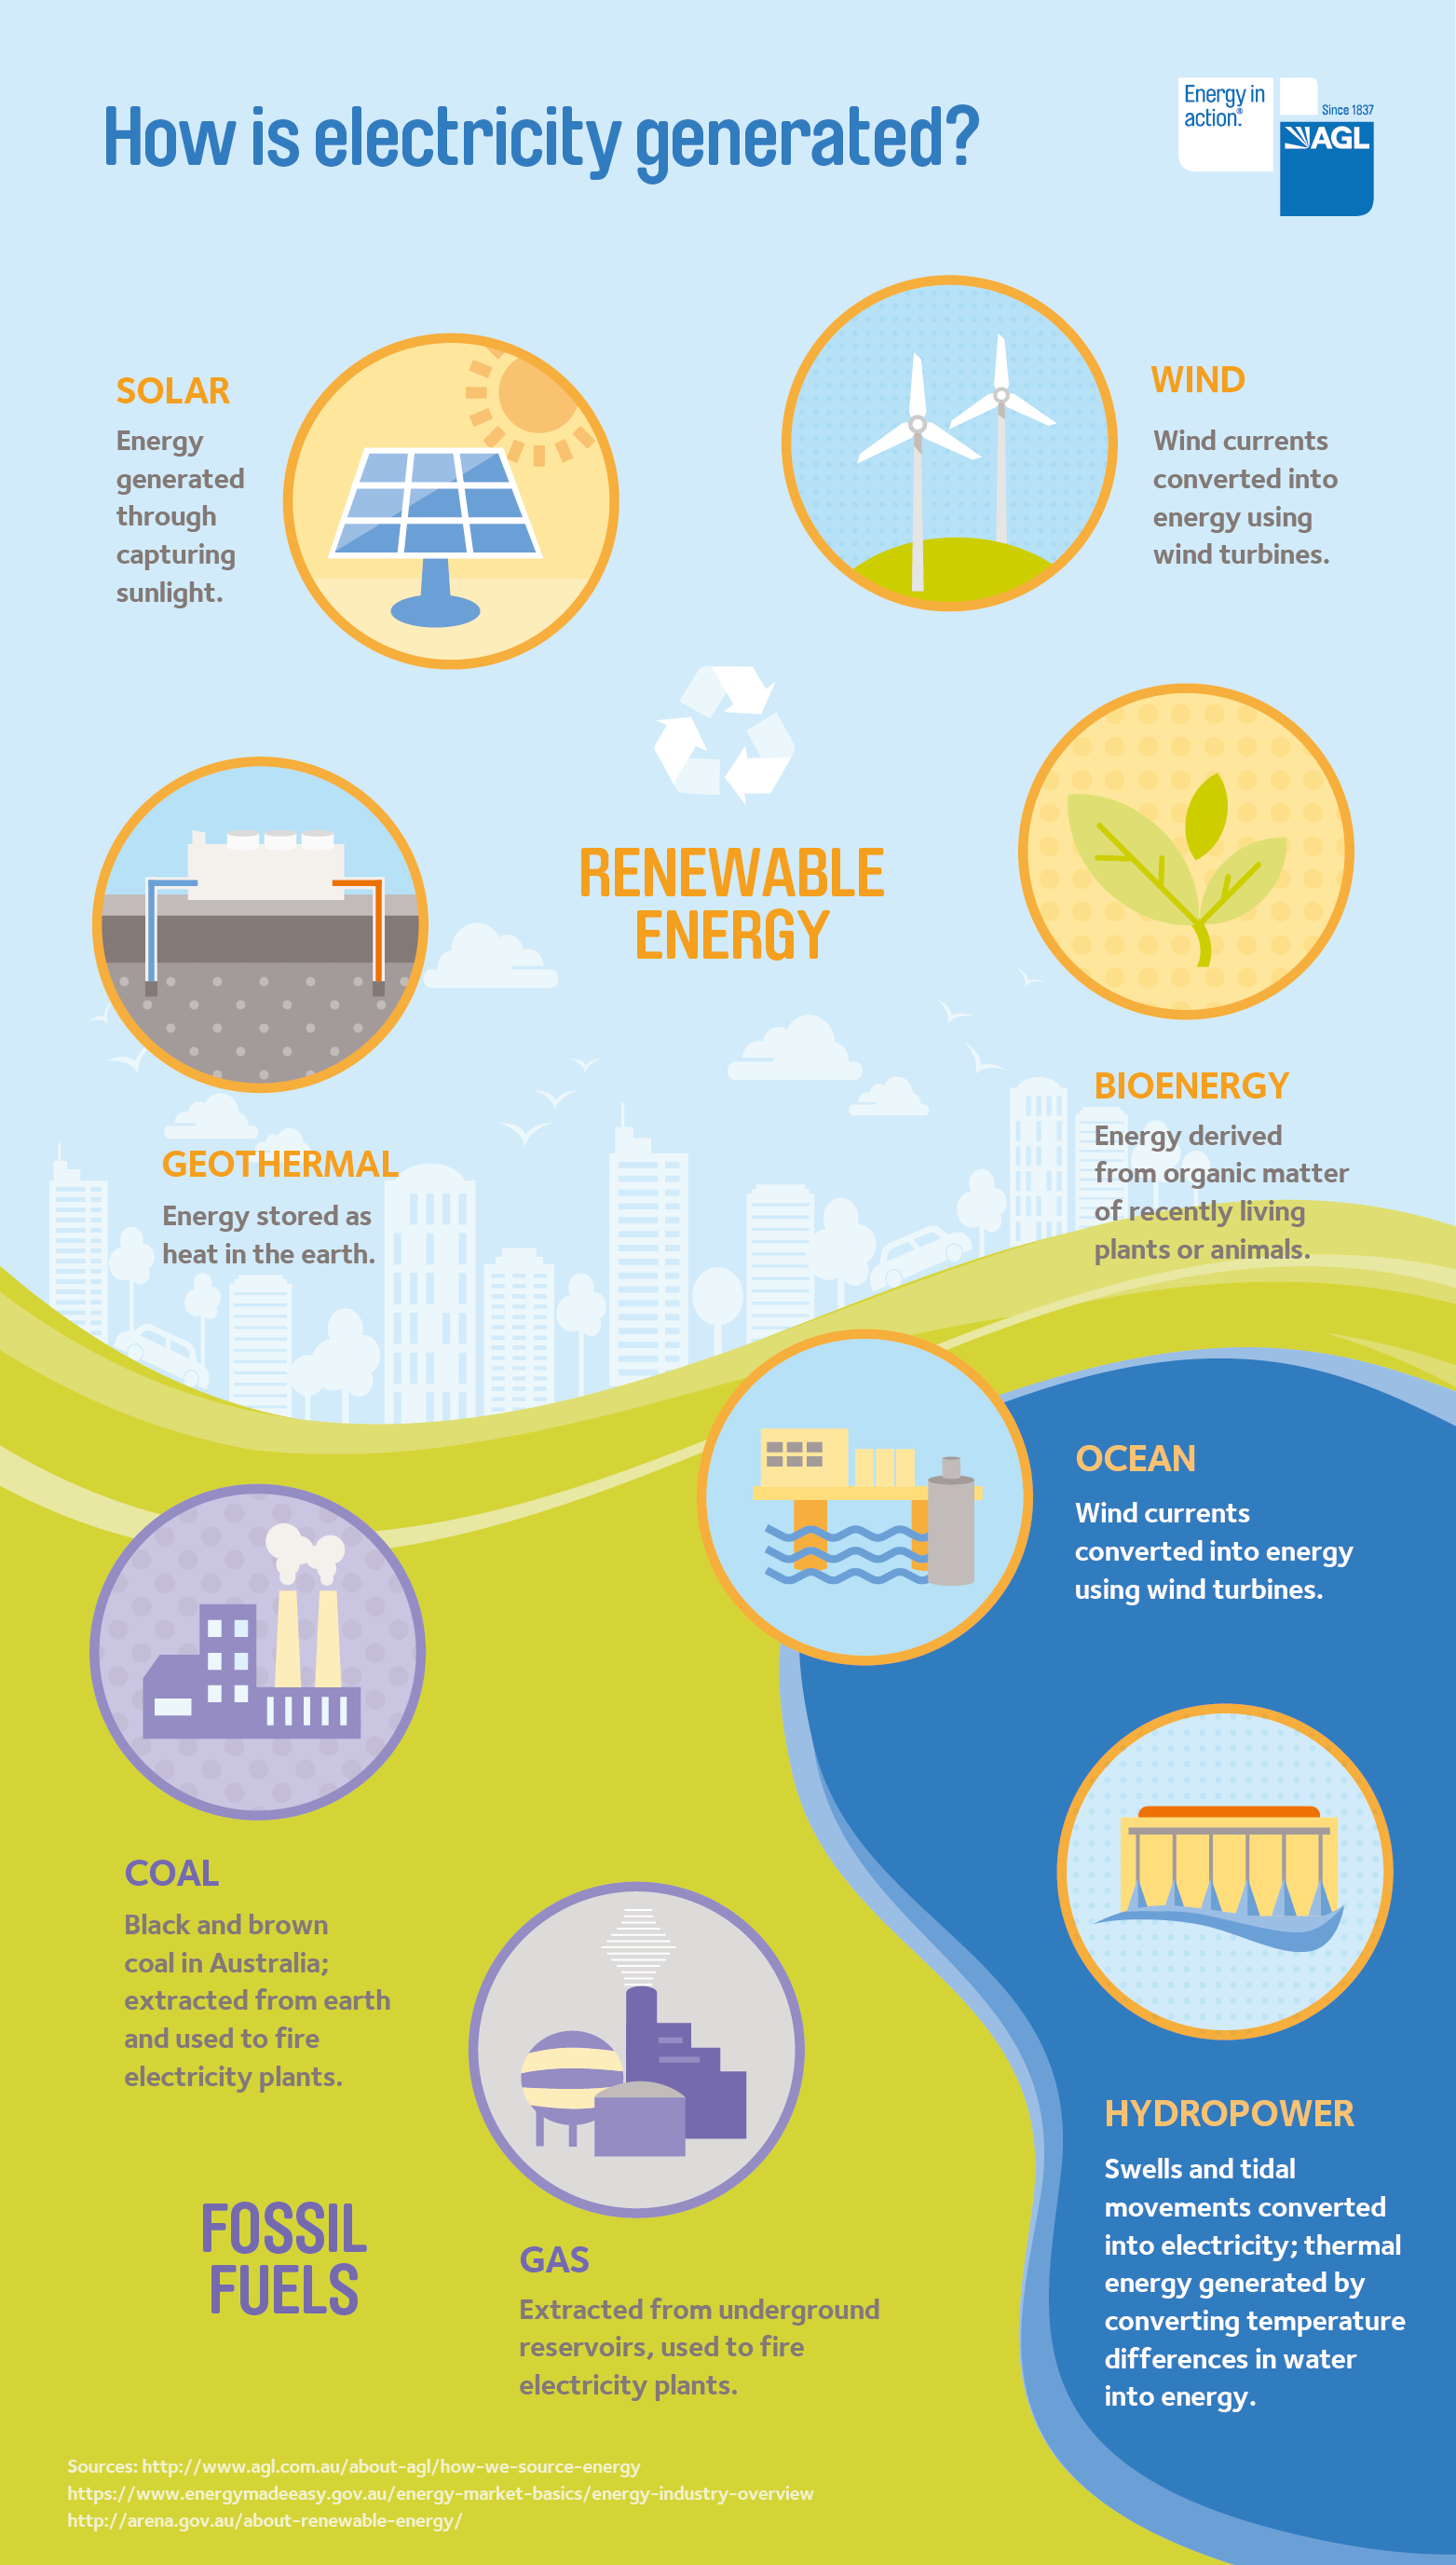 3035-Renewable-Infographic-01.png